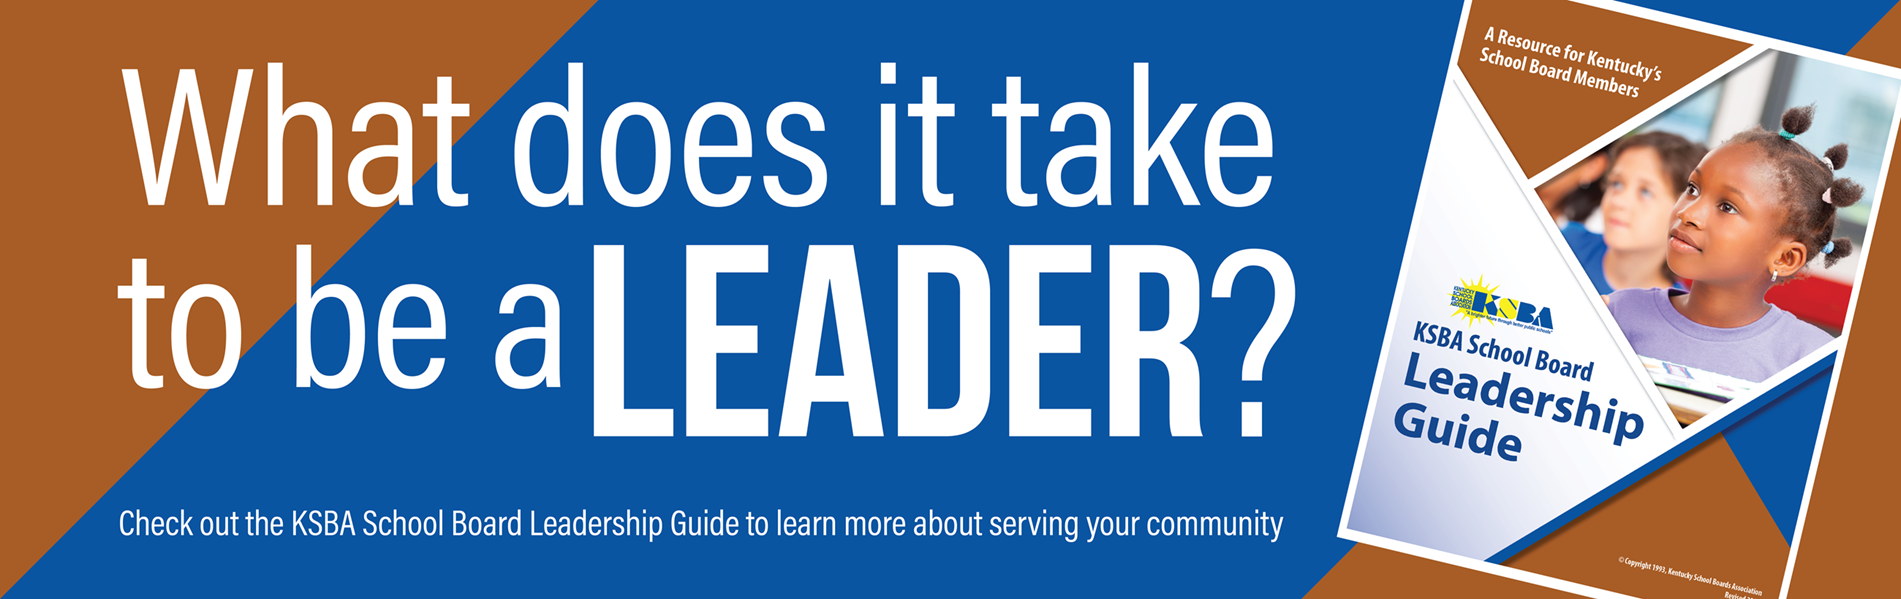 What does it take to be a school leader in your community?